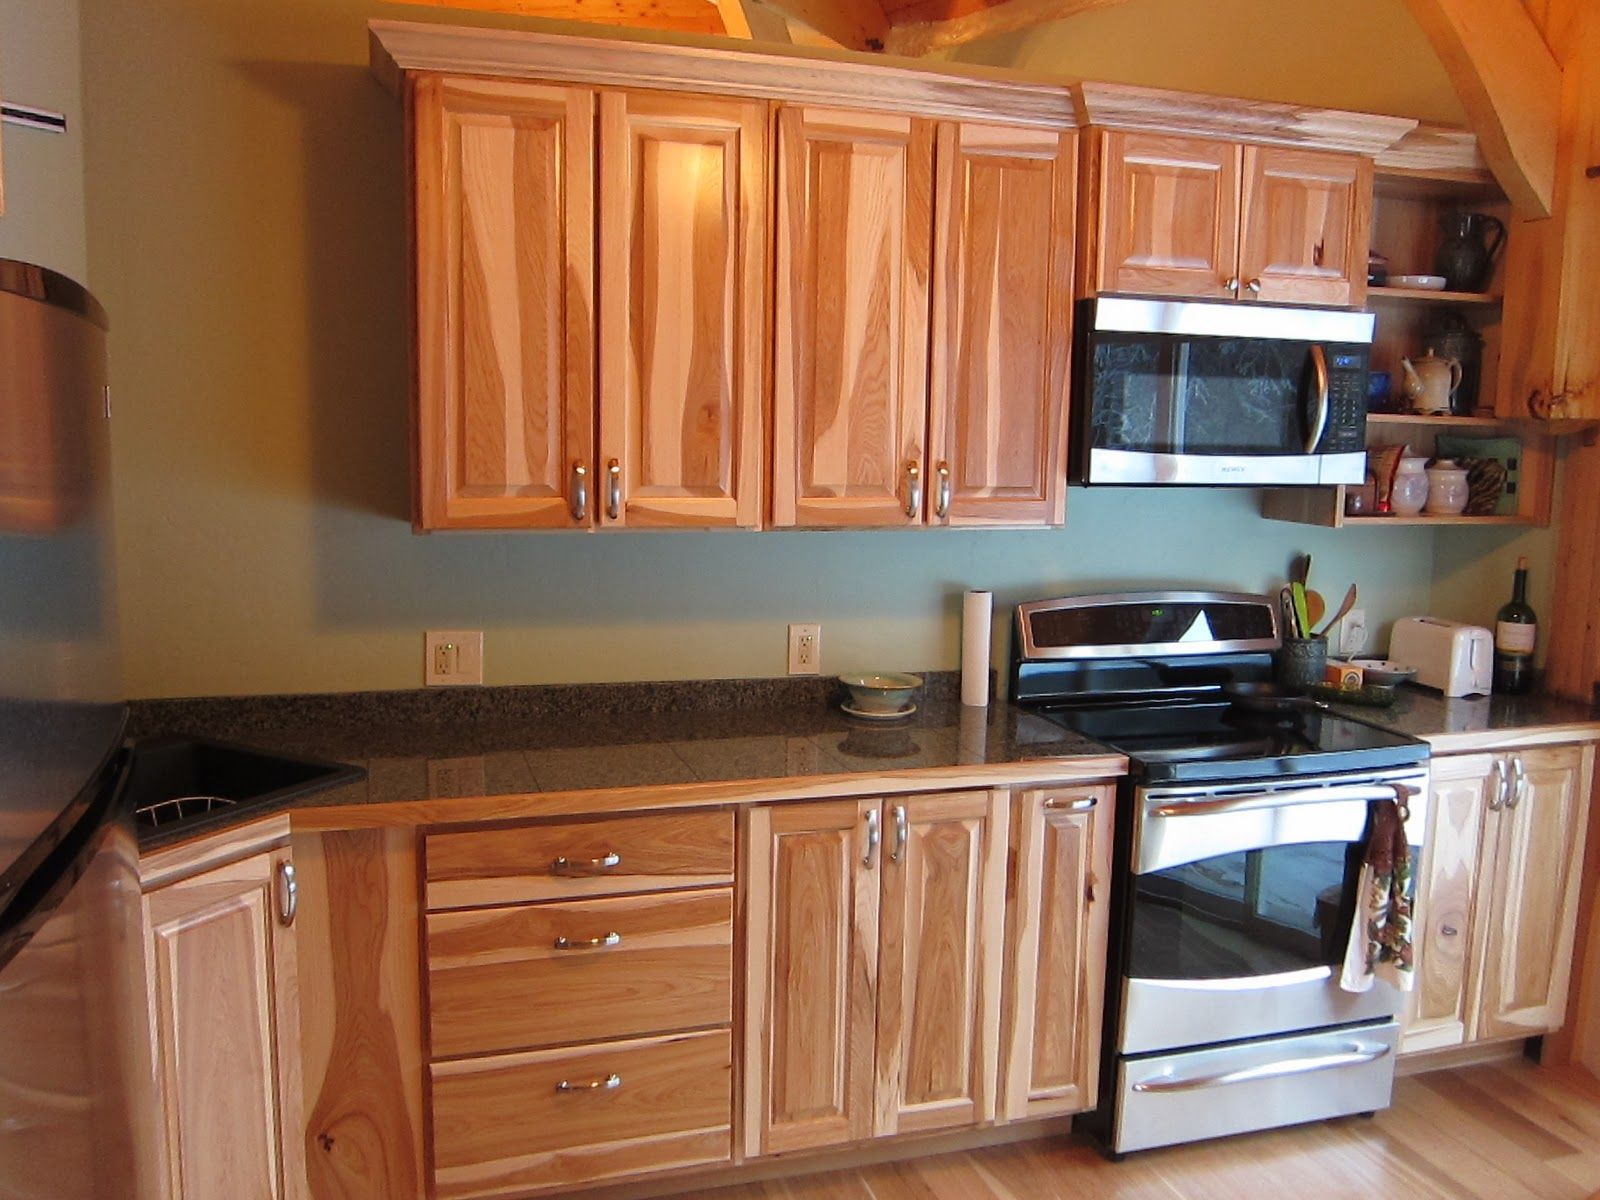 Assembled Kitchen Cabinets Assembled 43hickory 43kitchen 43cabinets Hickory Kitchen